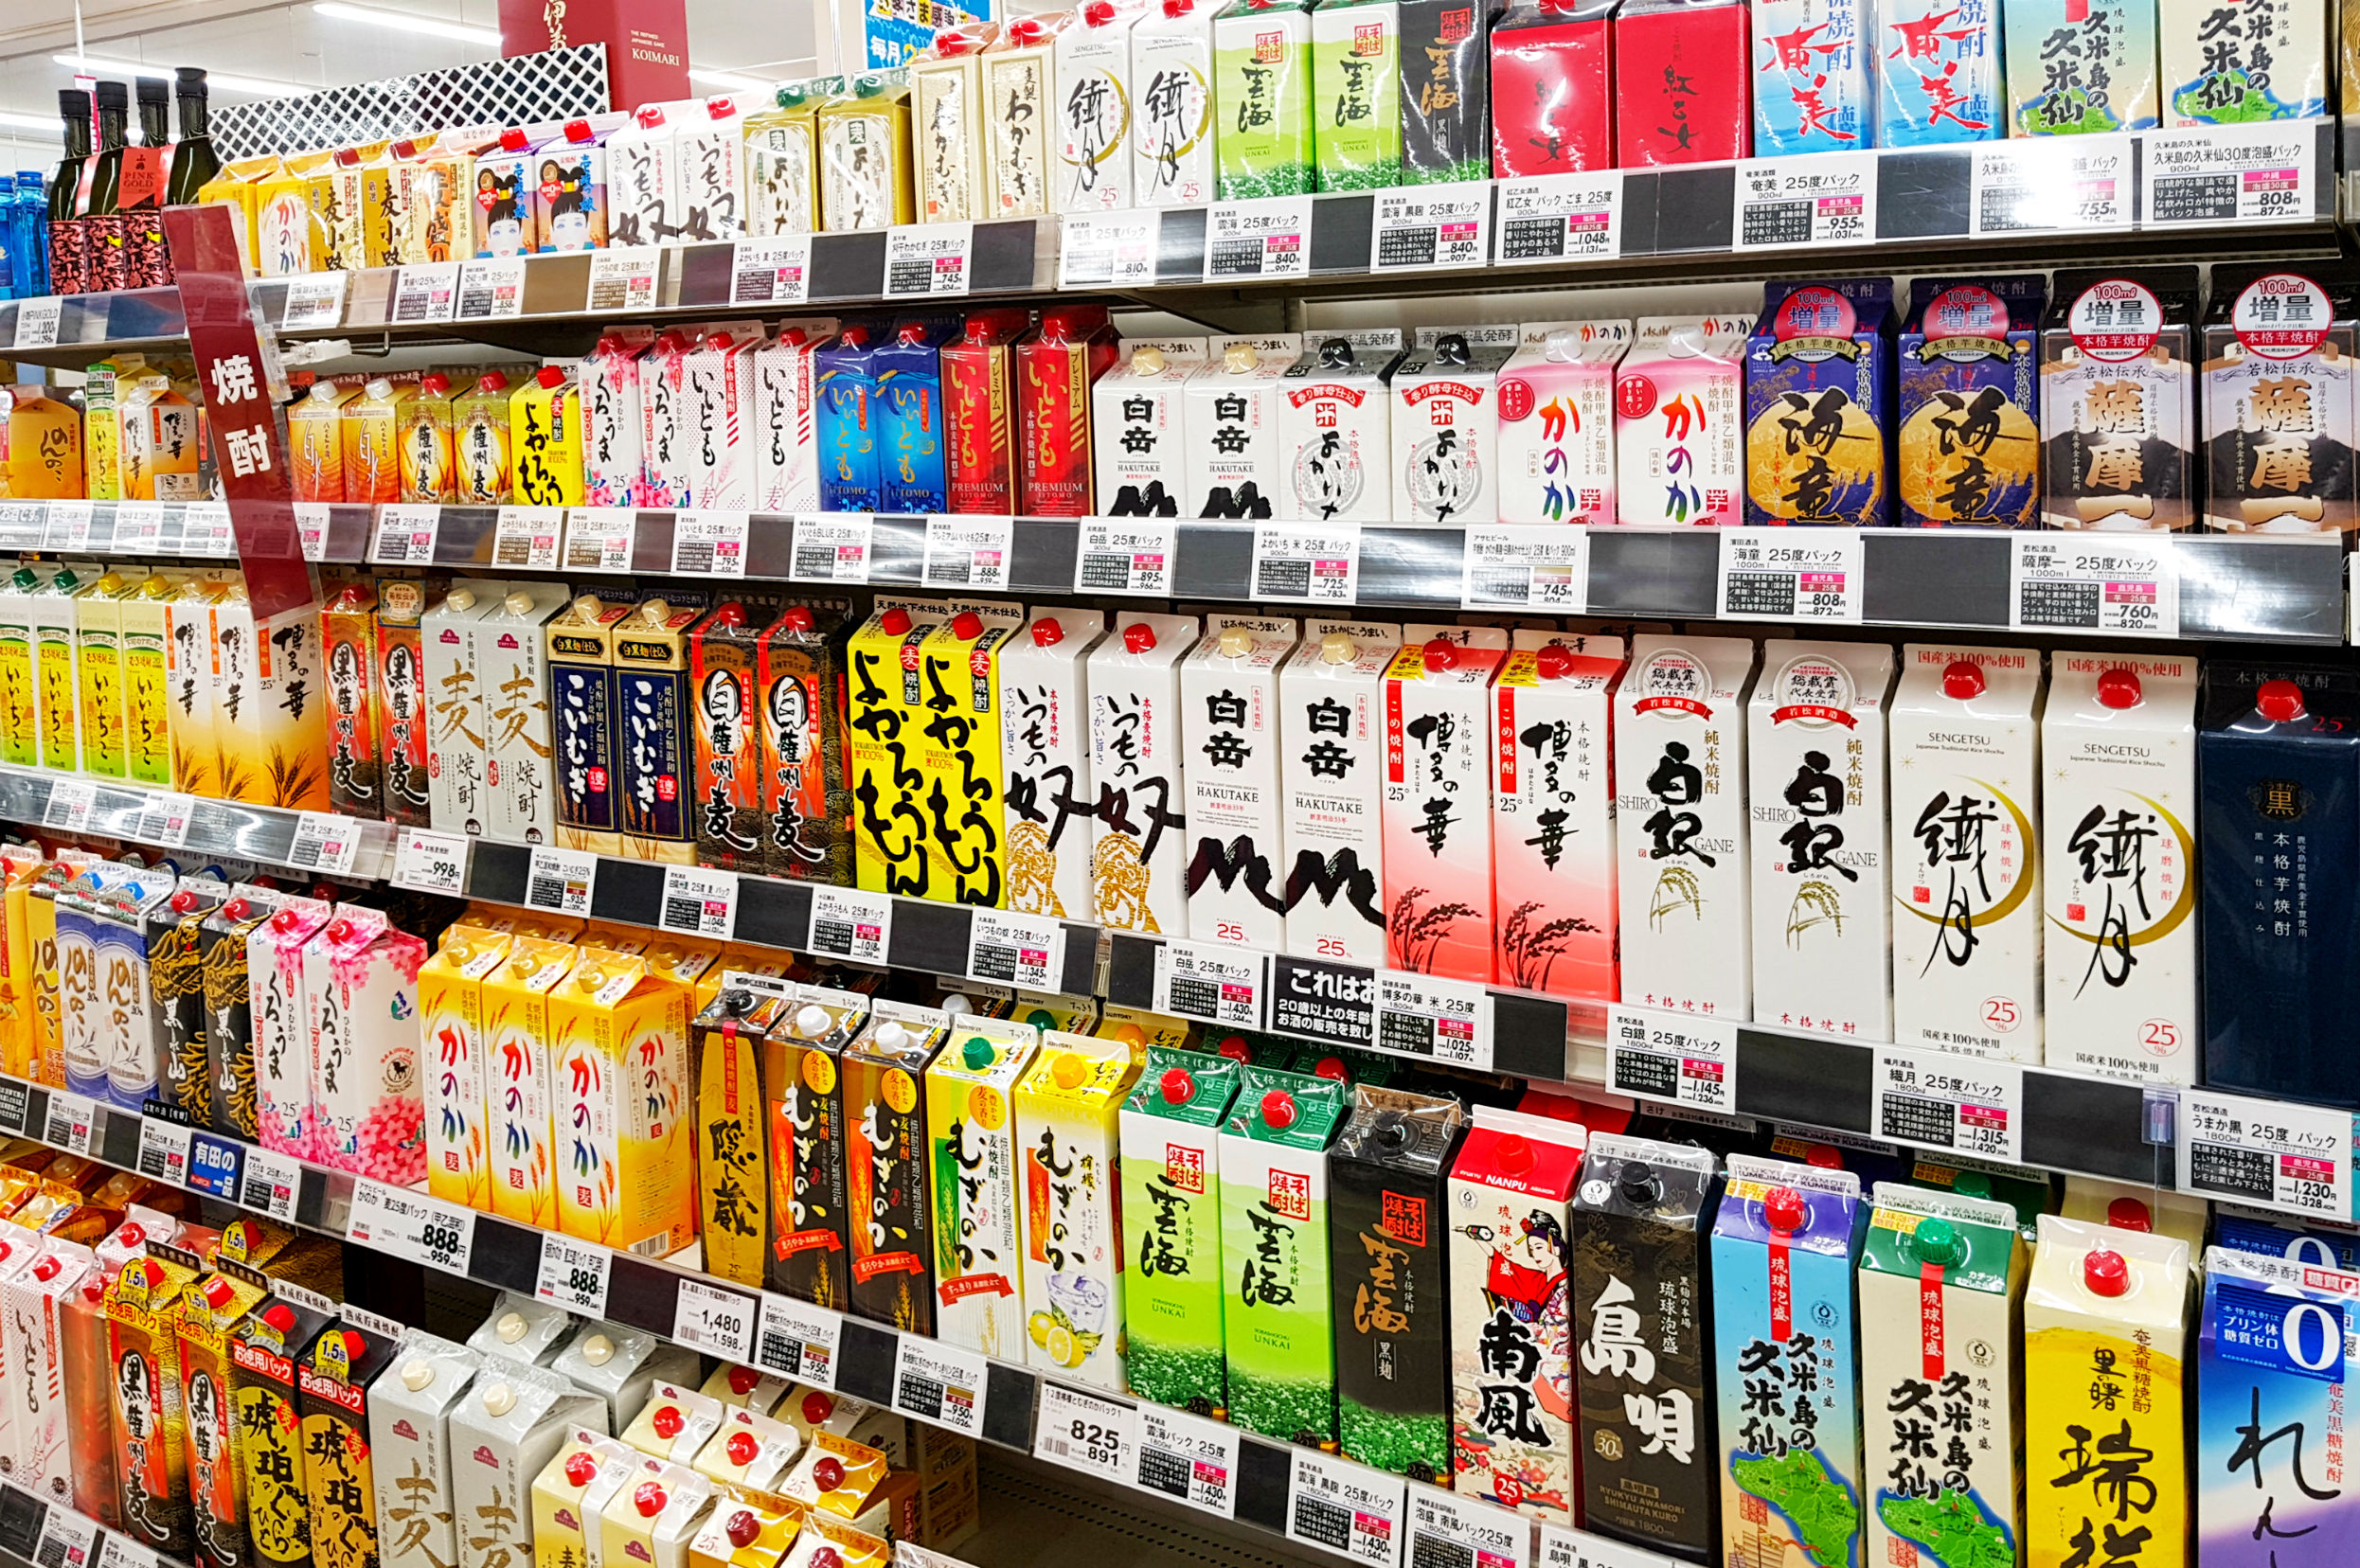 alcohol aisle in the supermarket